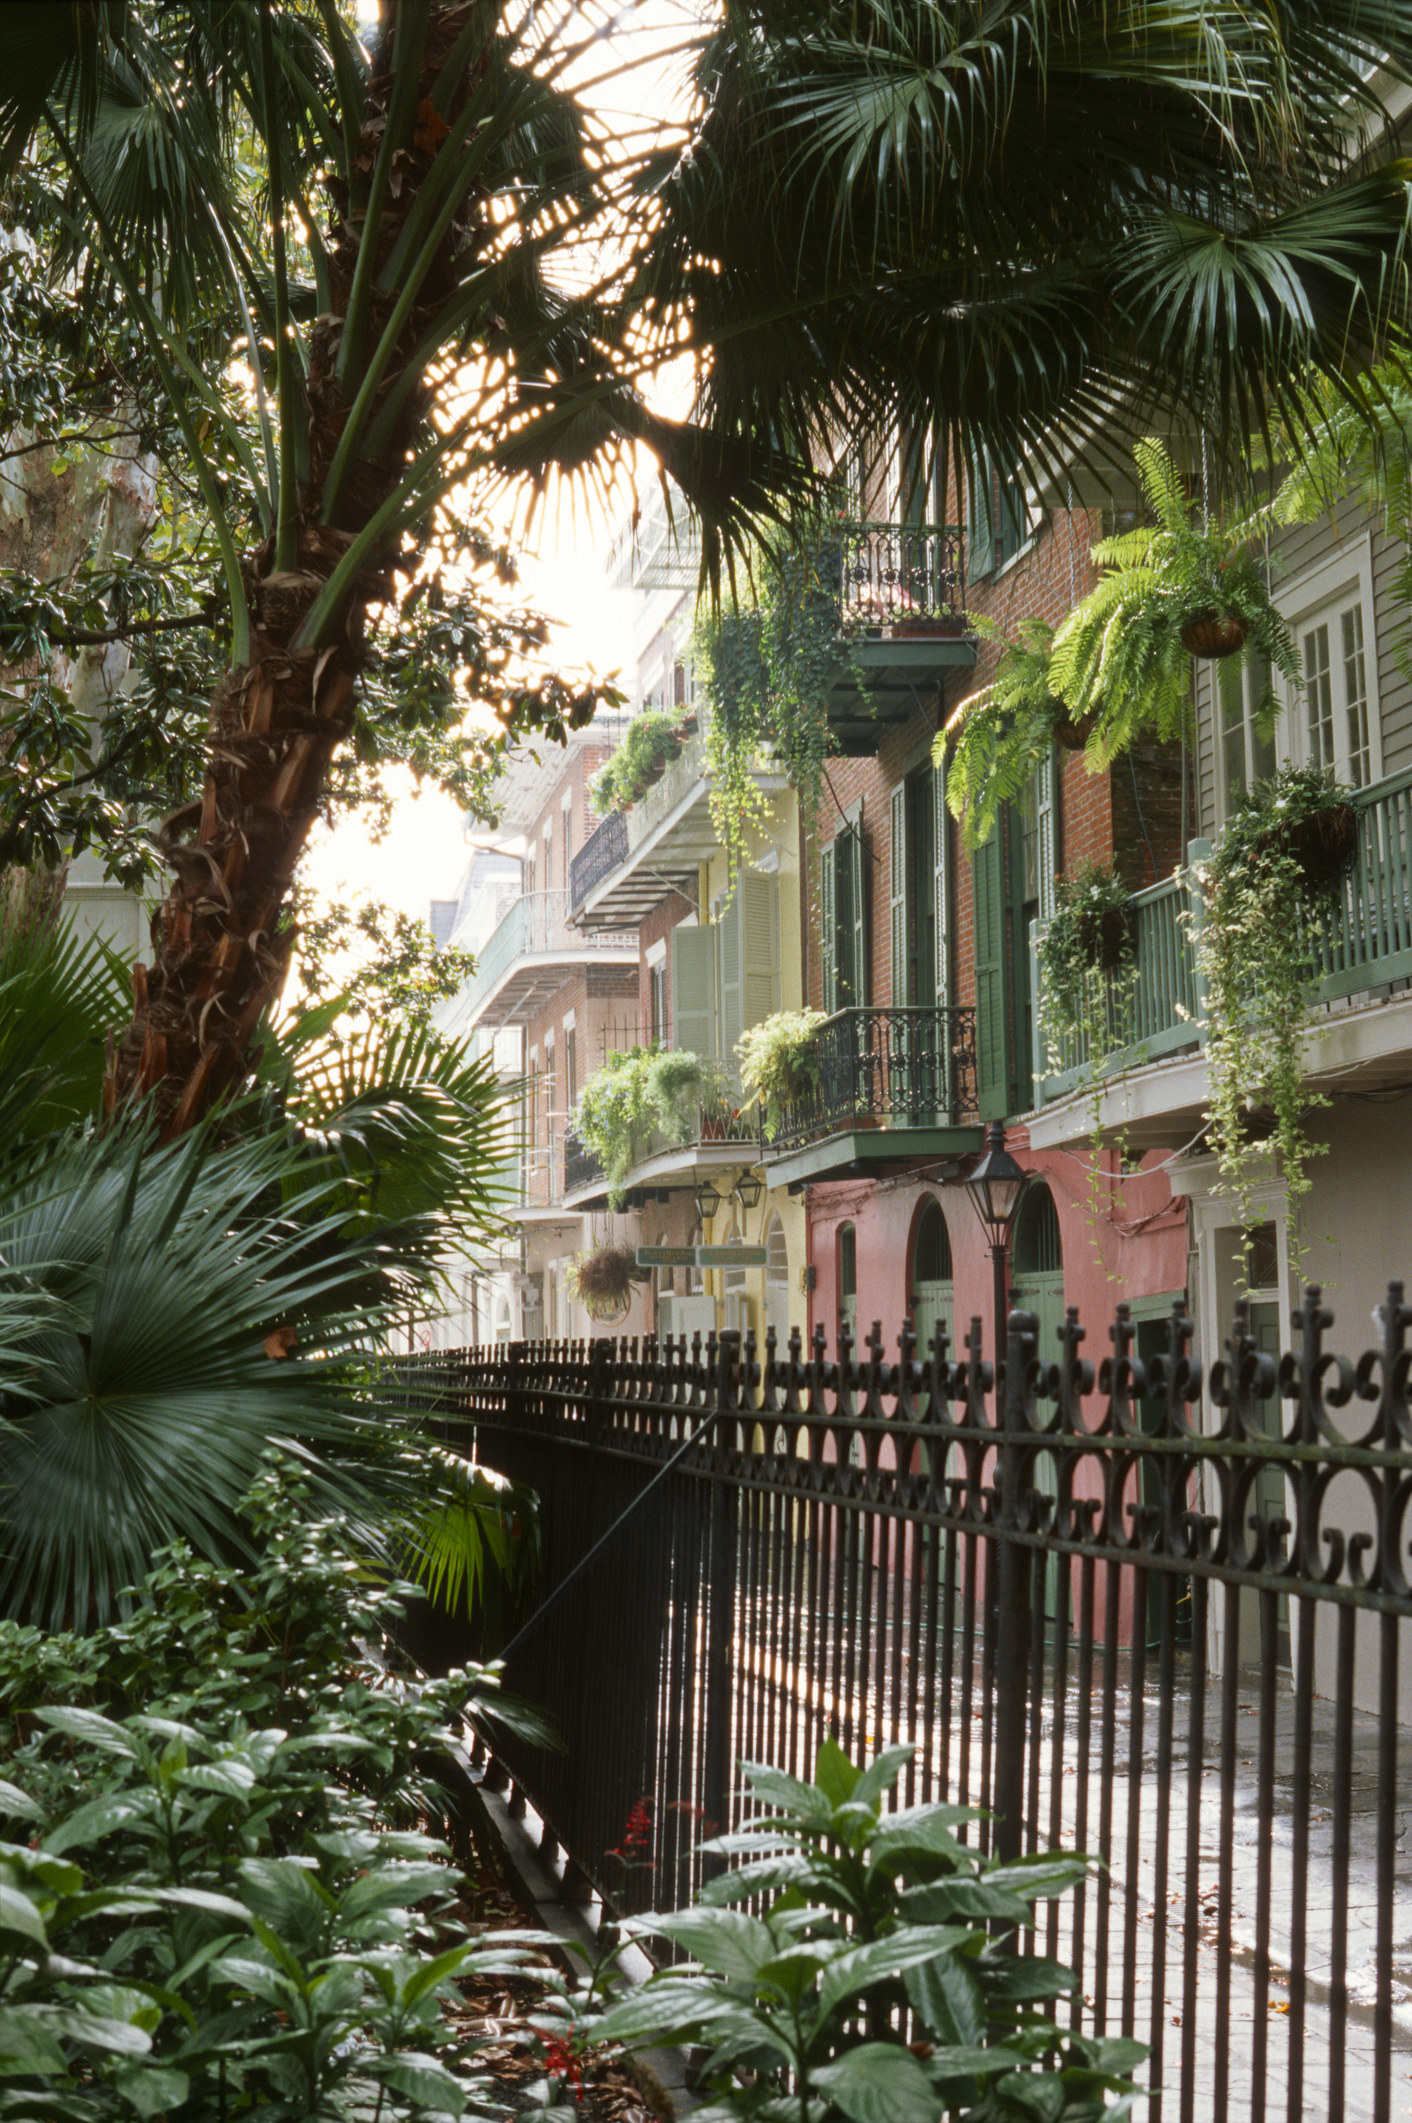 Beautiful buildings in the French quarter of New Orleans.